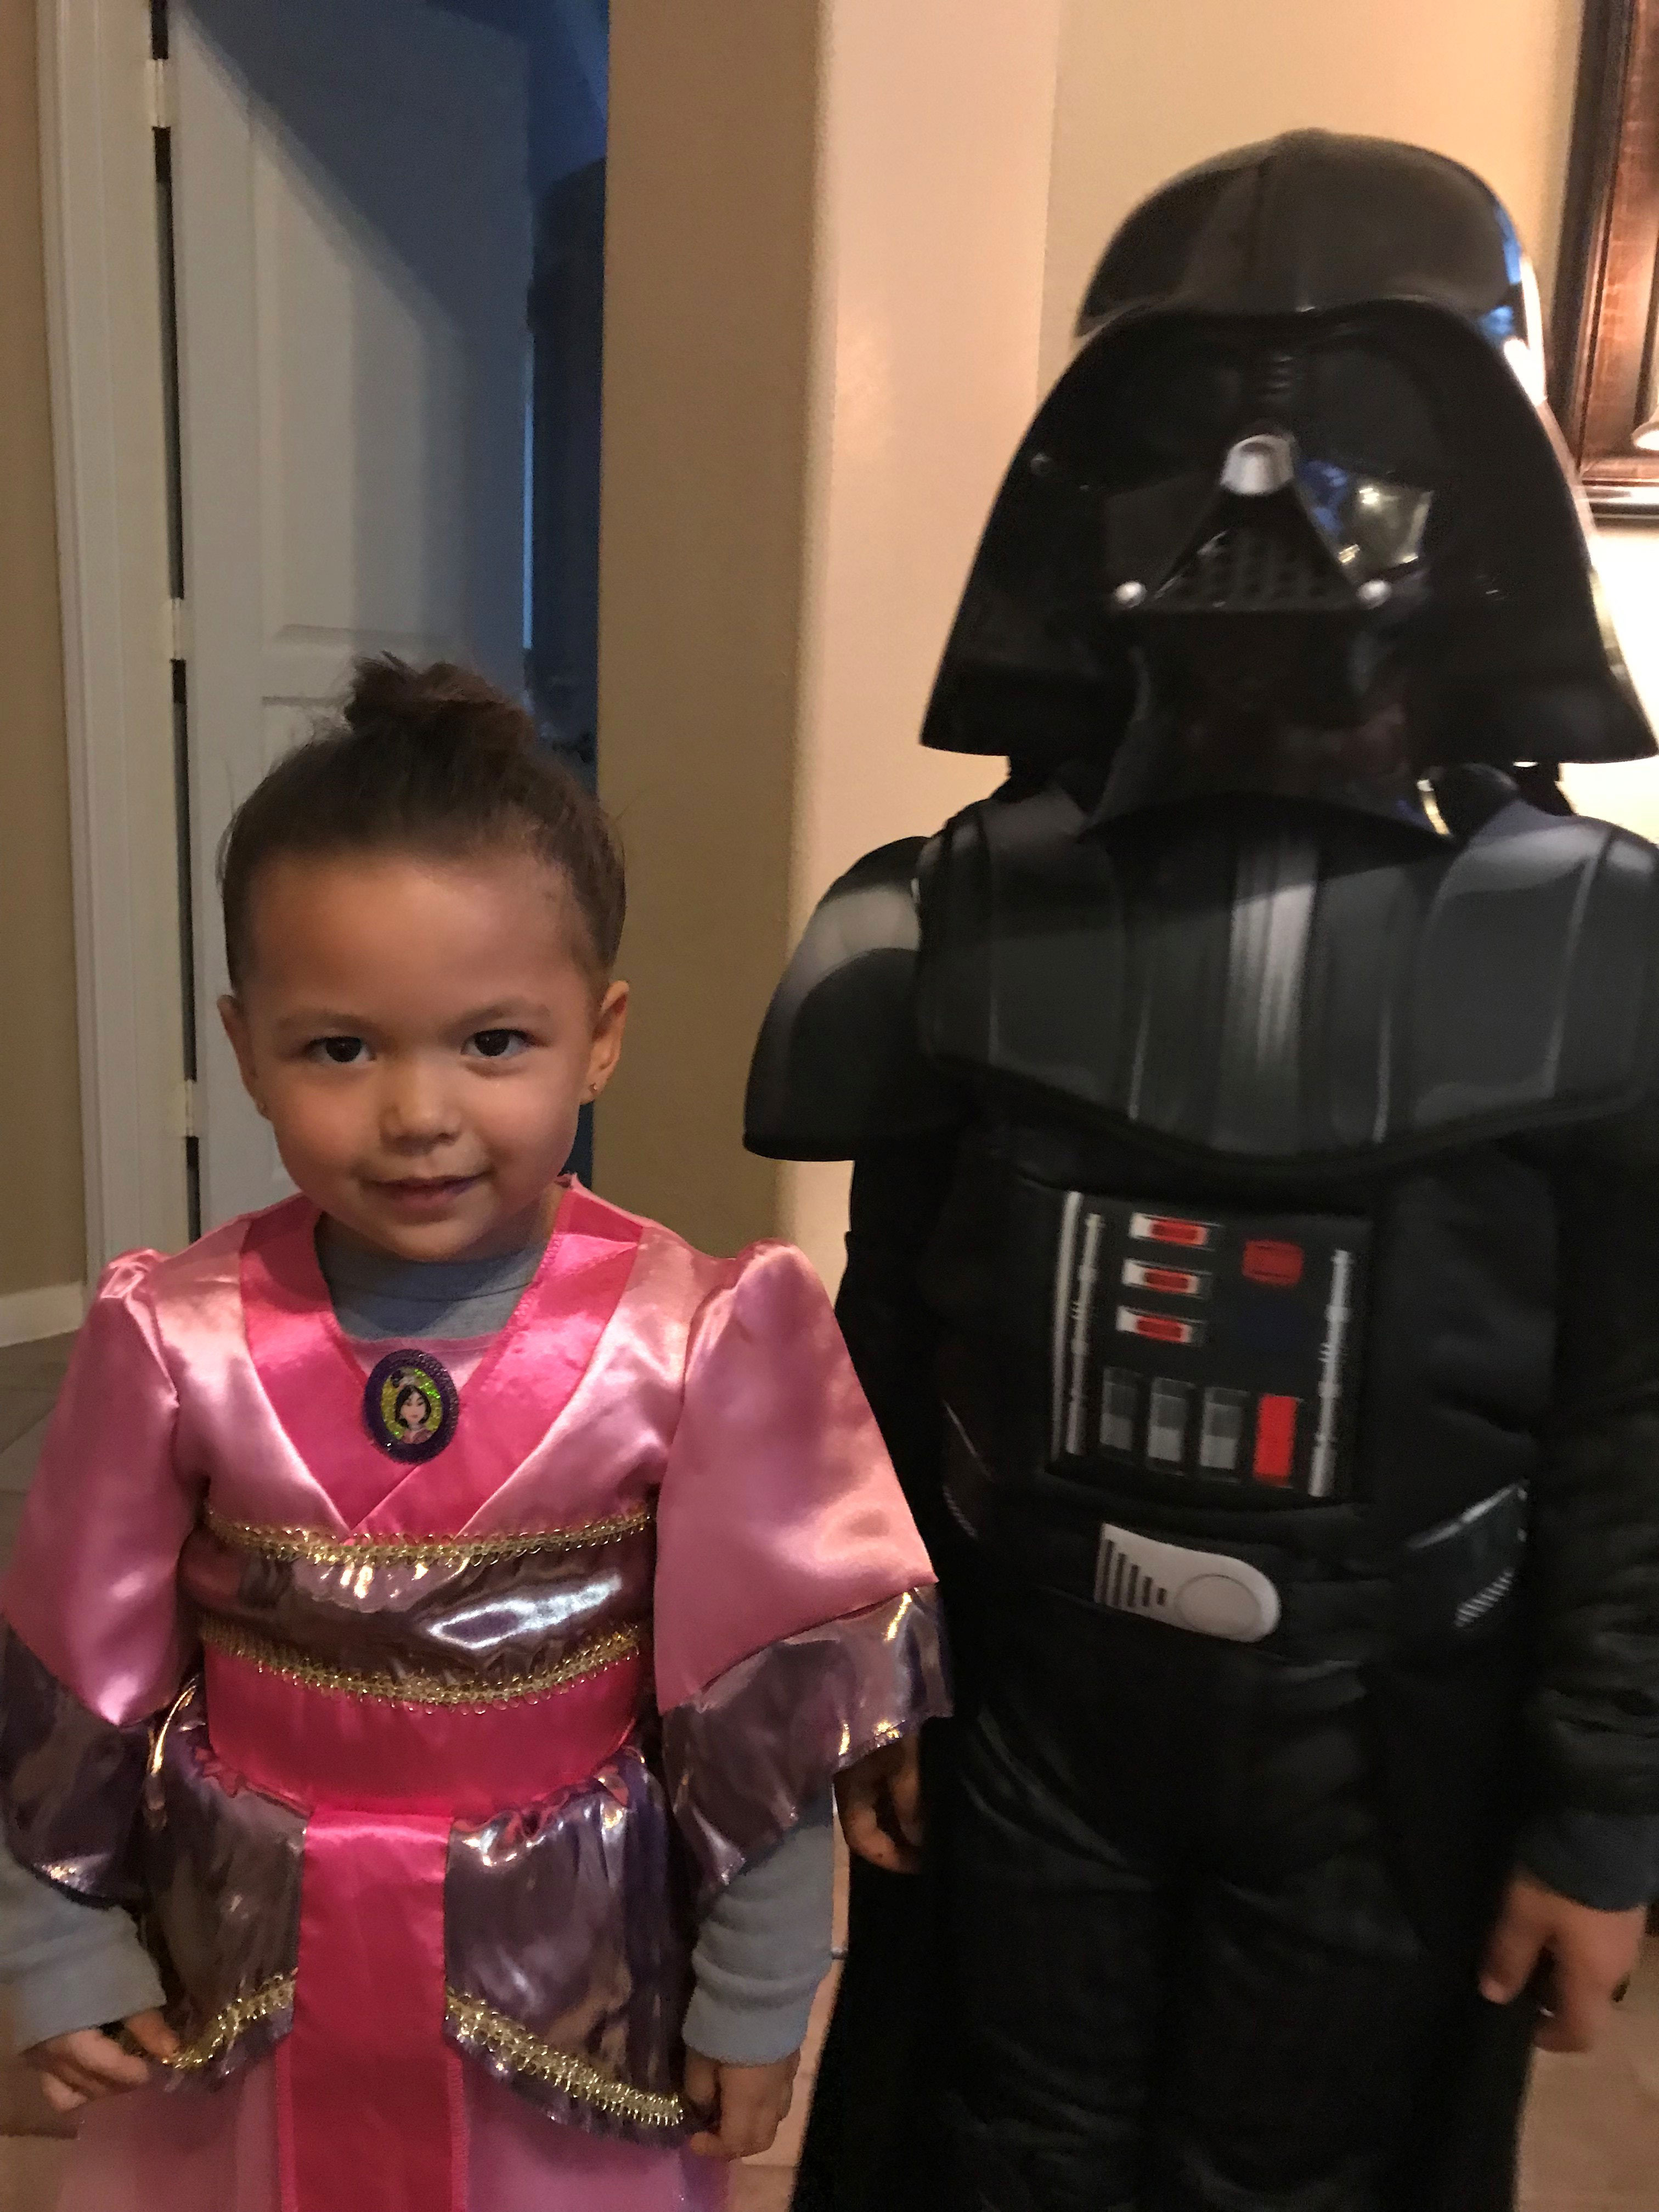 "<div class=""meta image-caption""><div class=""origin-logo origin-image none""><span>none</span></div><span class=""caption-text"">The force is strong with Elita Loresca's children this Halloween, as her daughter portrays Disney's Mulan and her son dresses as Star Wars' Darth Vader.</span></div>"